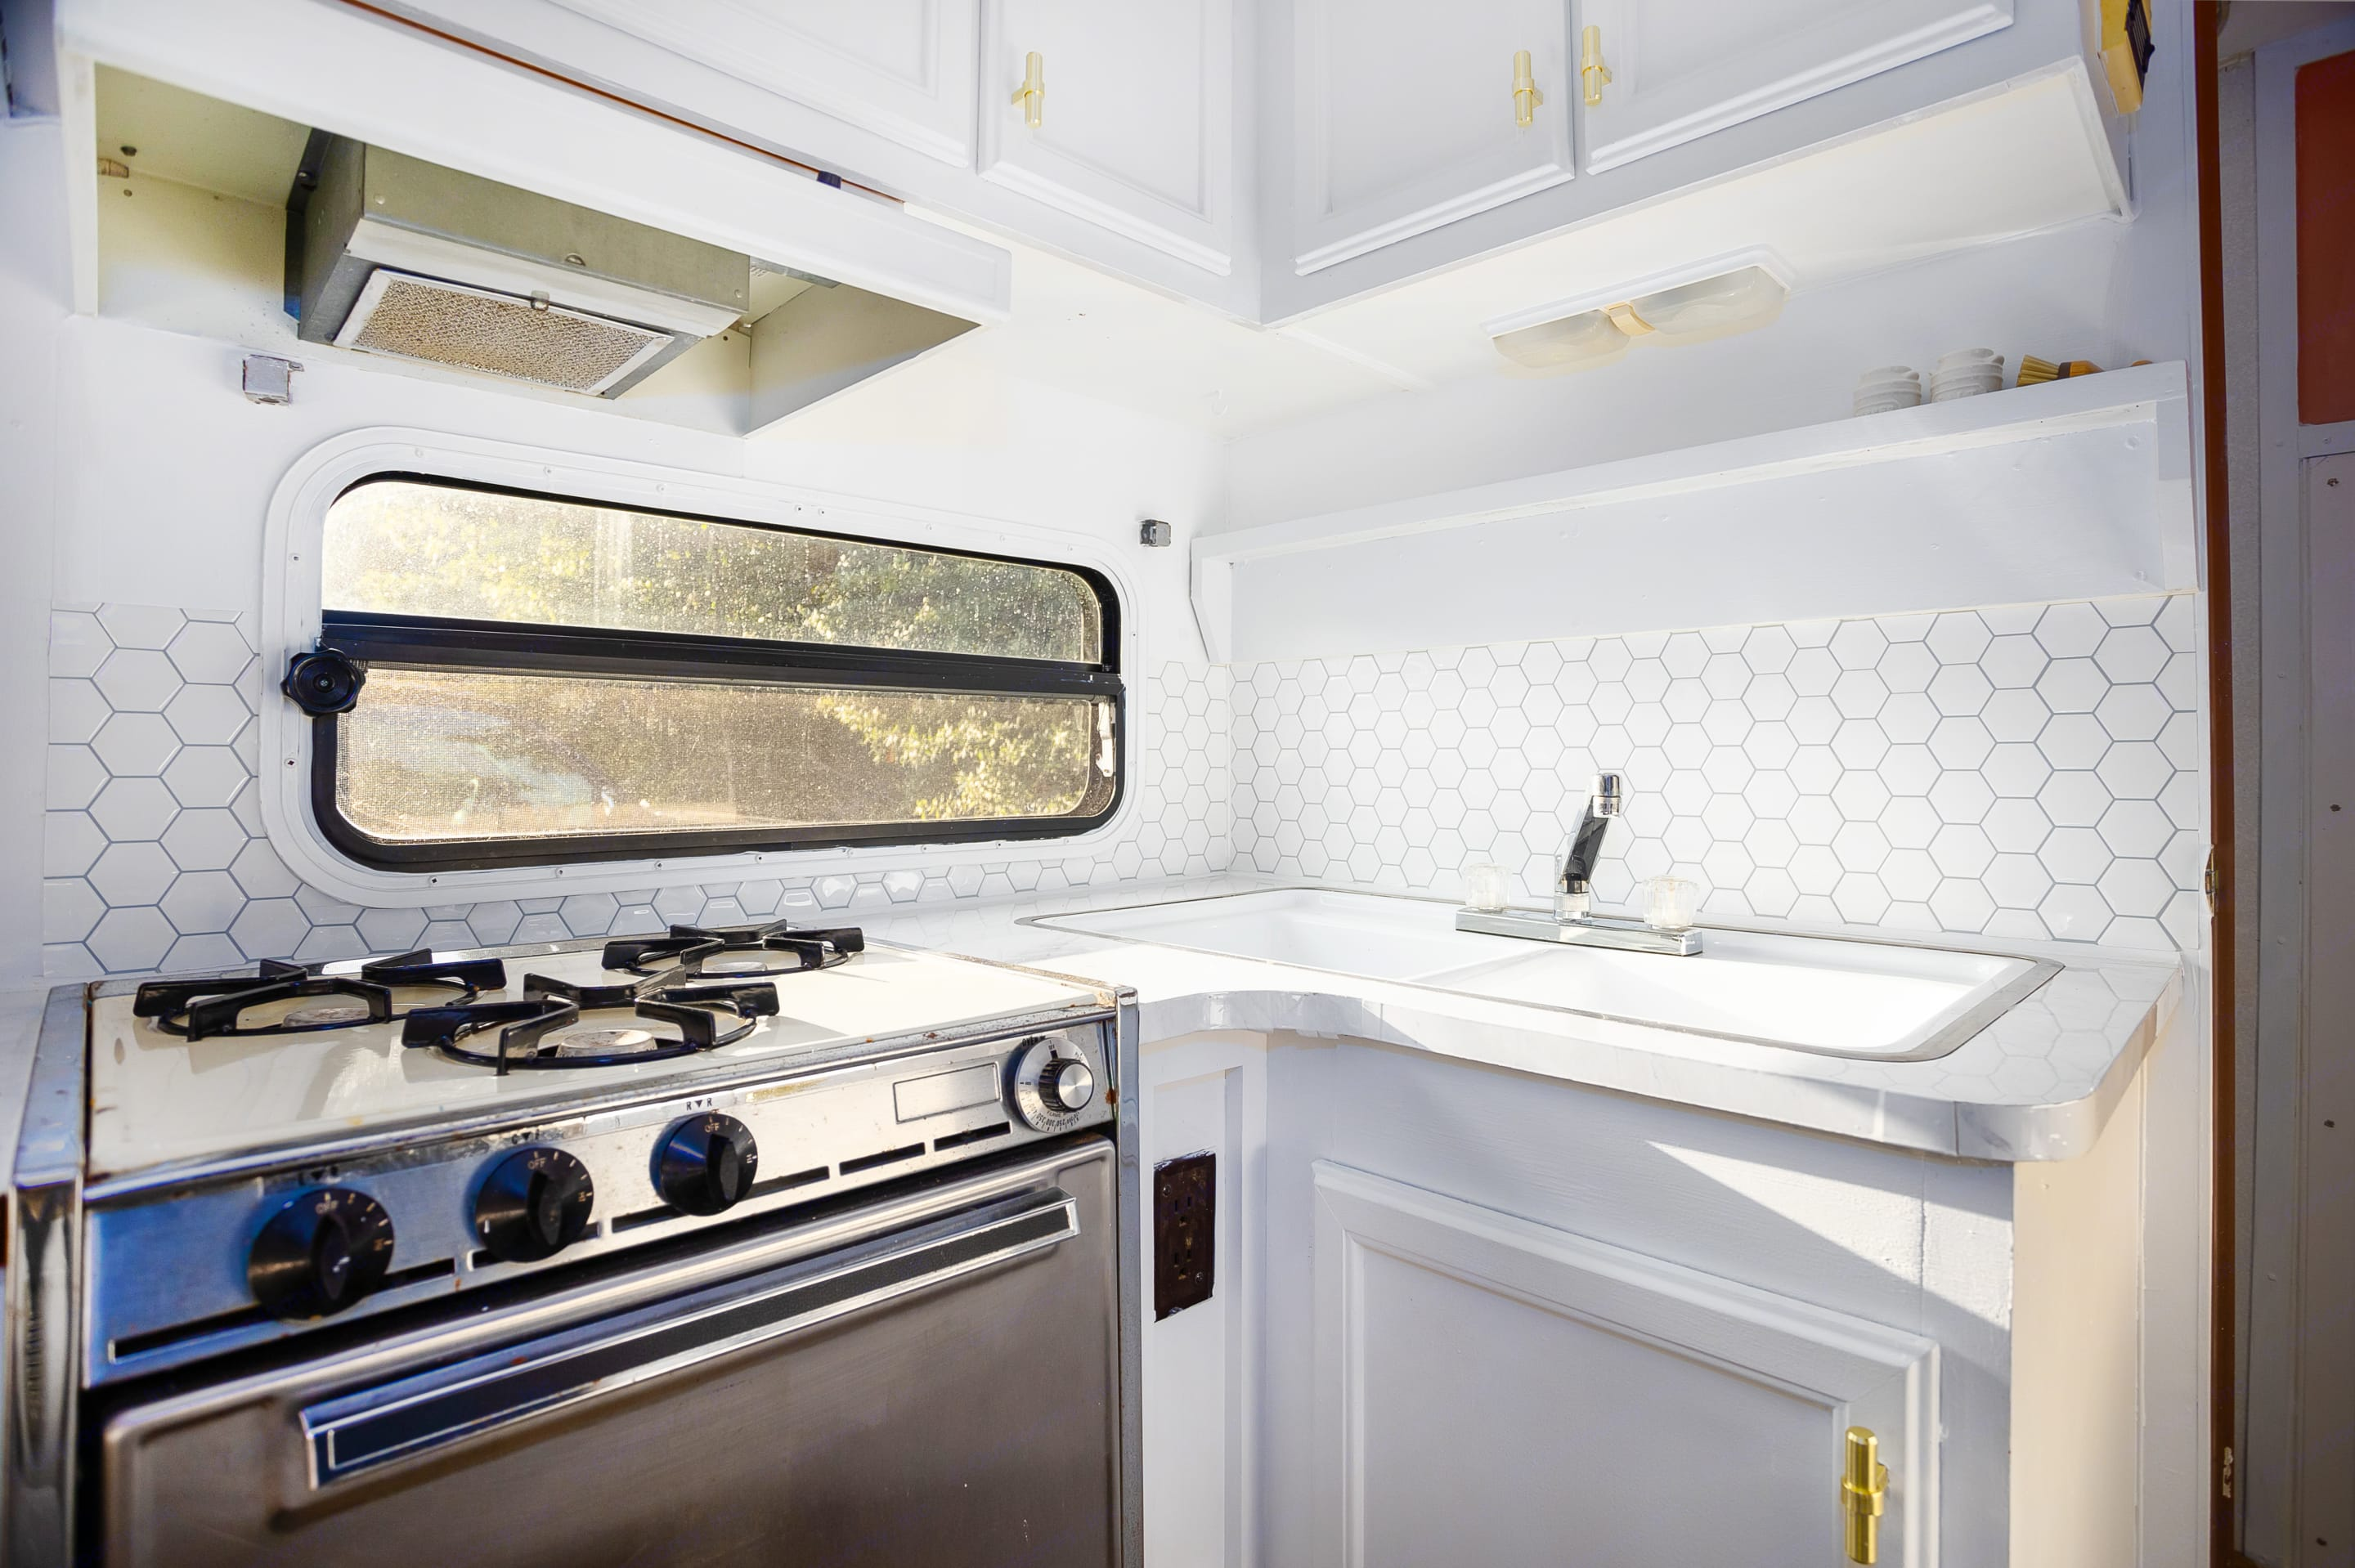 Kitchen, includes stove, oven, refrigerator, & sink. Stocked with plates,utenciles, pots & pans.. Fleetwood Prowler 1992